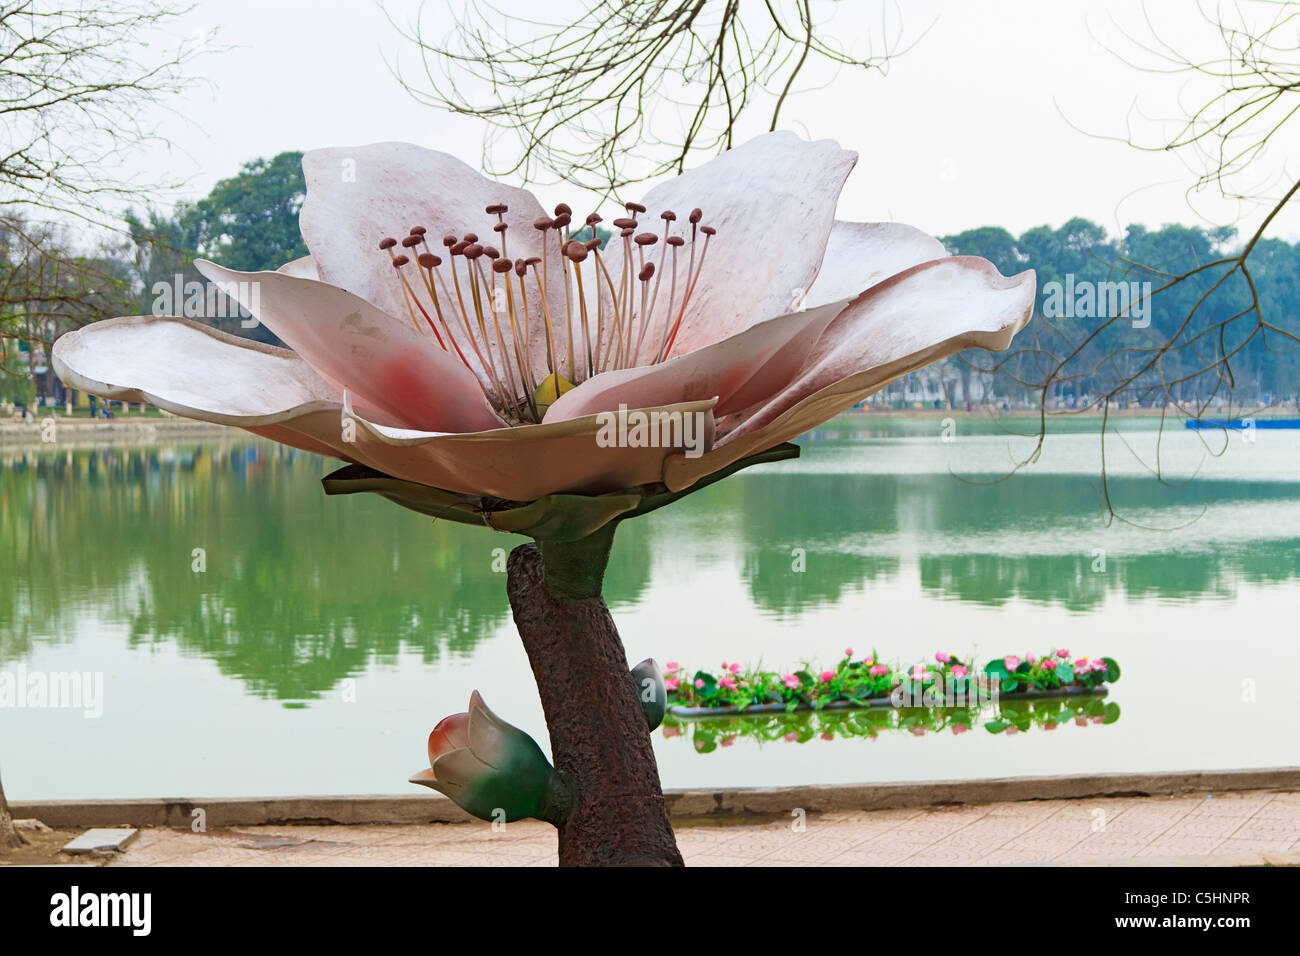 Large statue of lotus flower (with real lotus flowers on a floating planter in the background) in front of Hoan - Stock Image